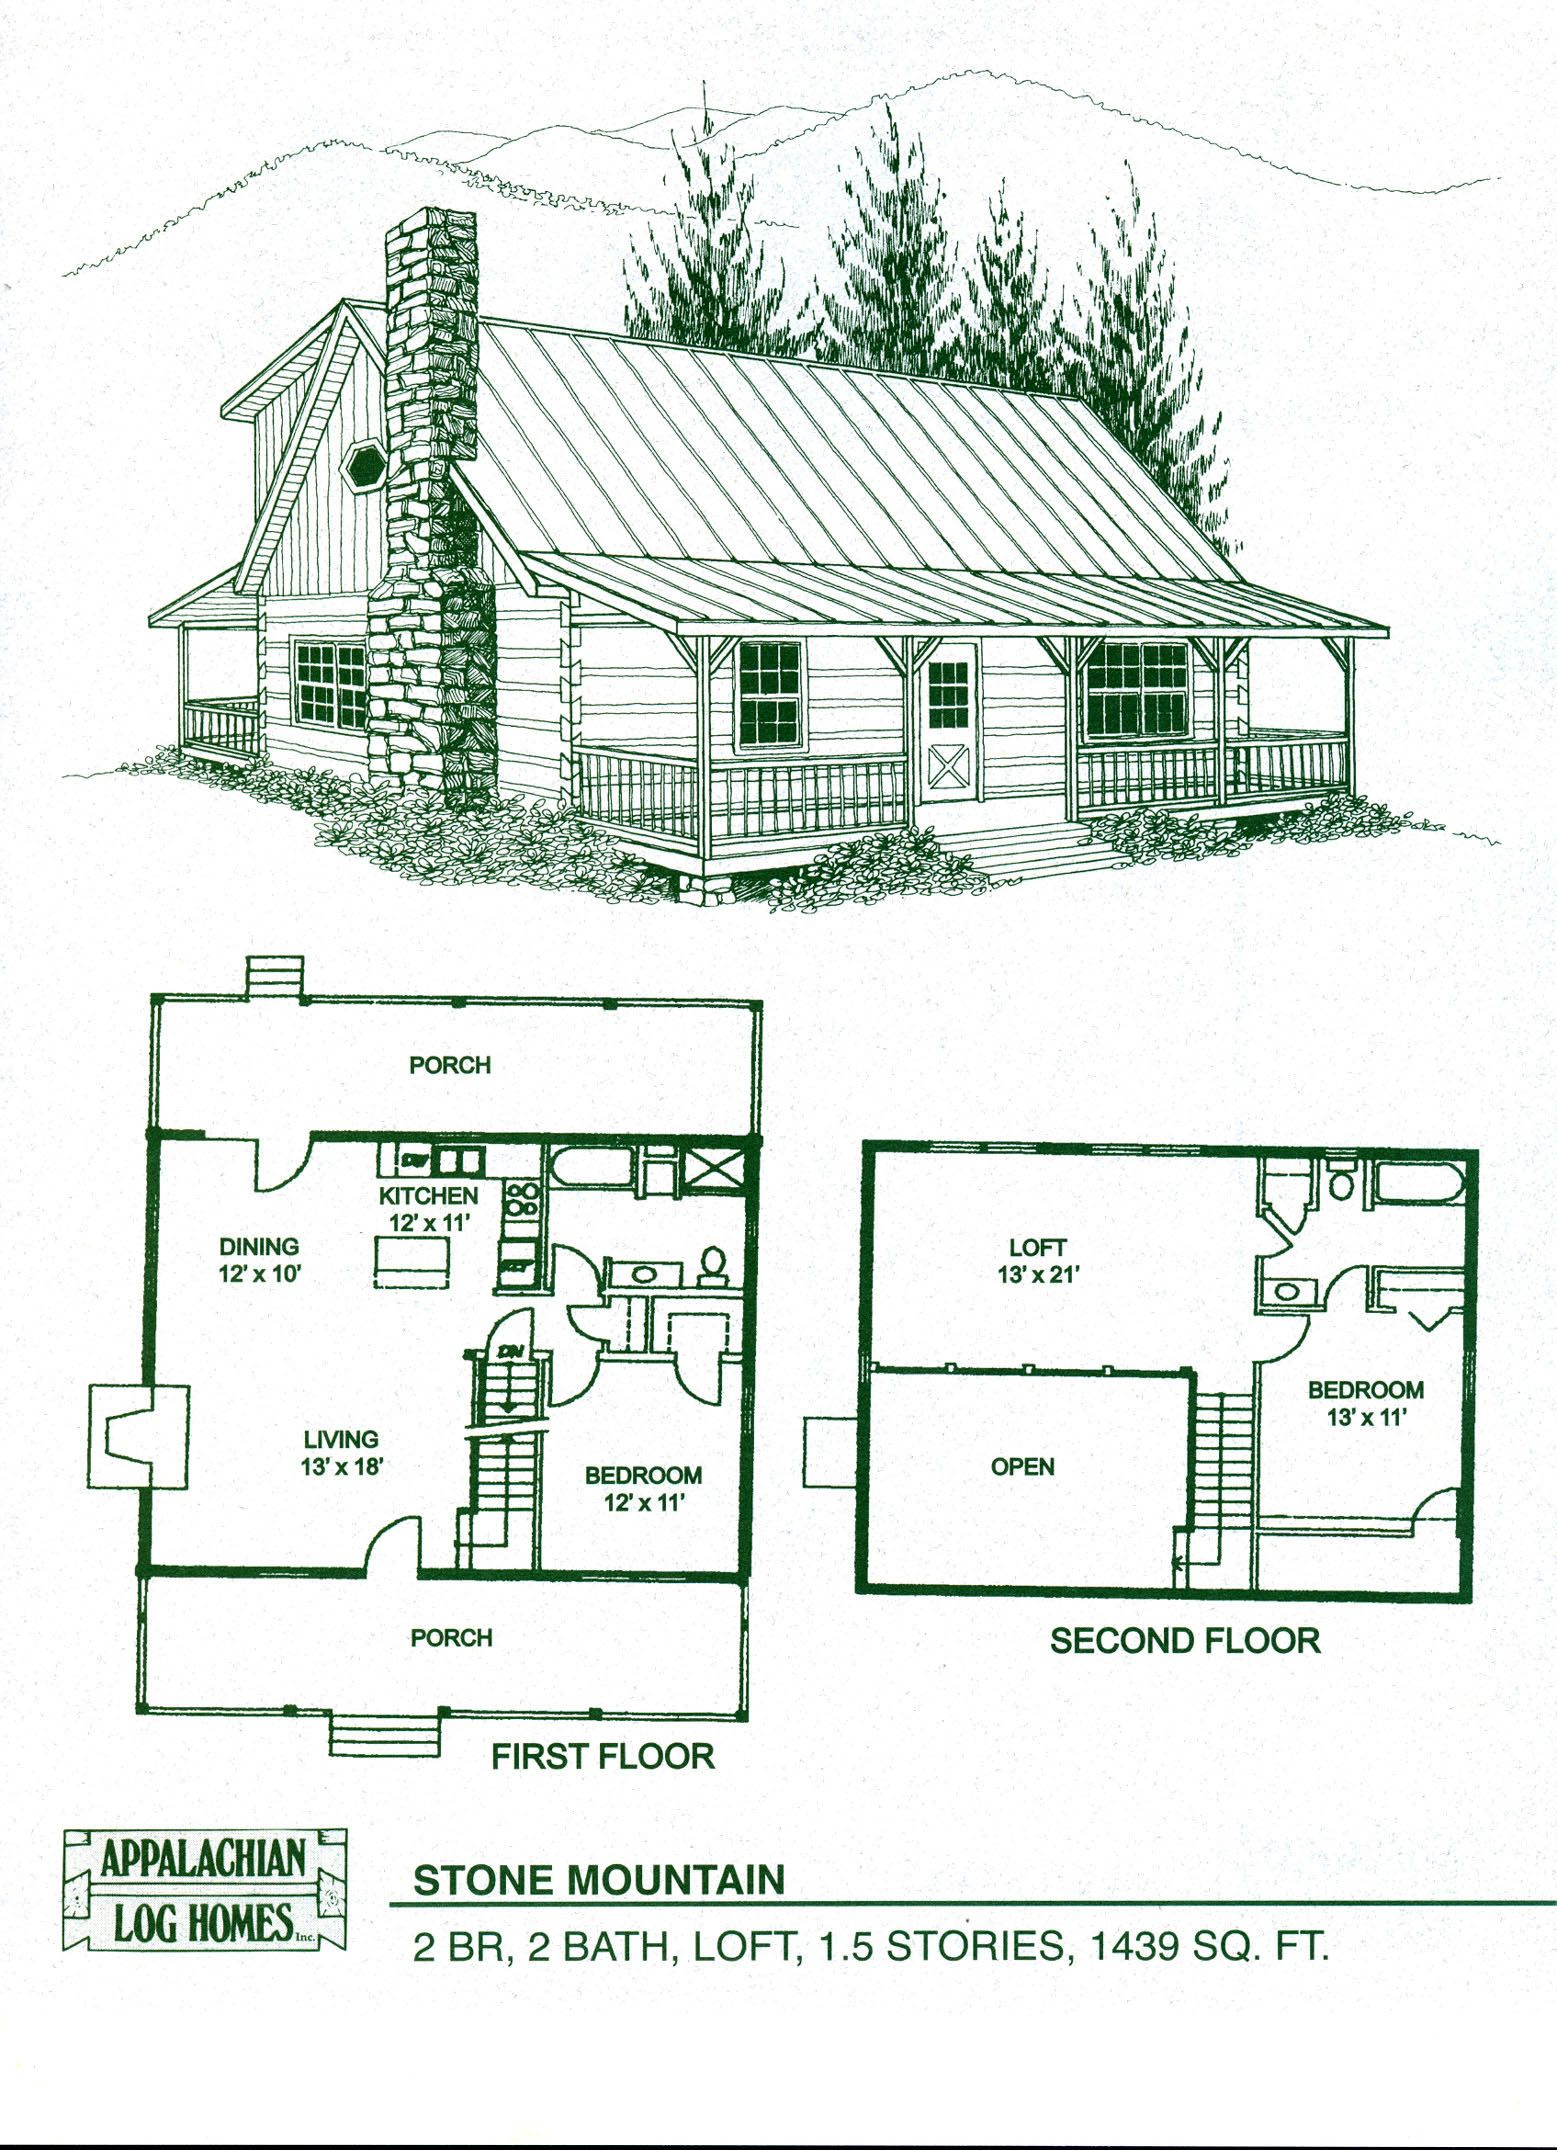 log cabin floor plans with loft | Cabin house plans, Log cabin floor plans,  Log home floor plans